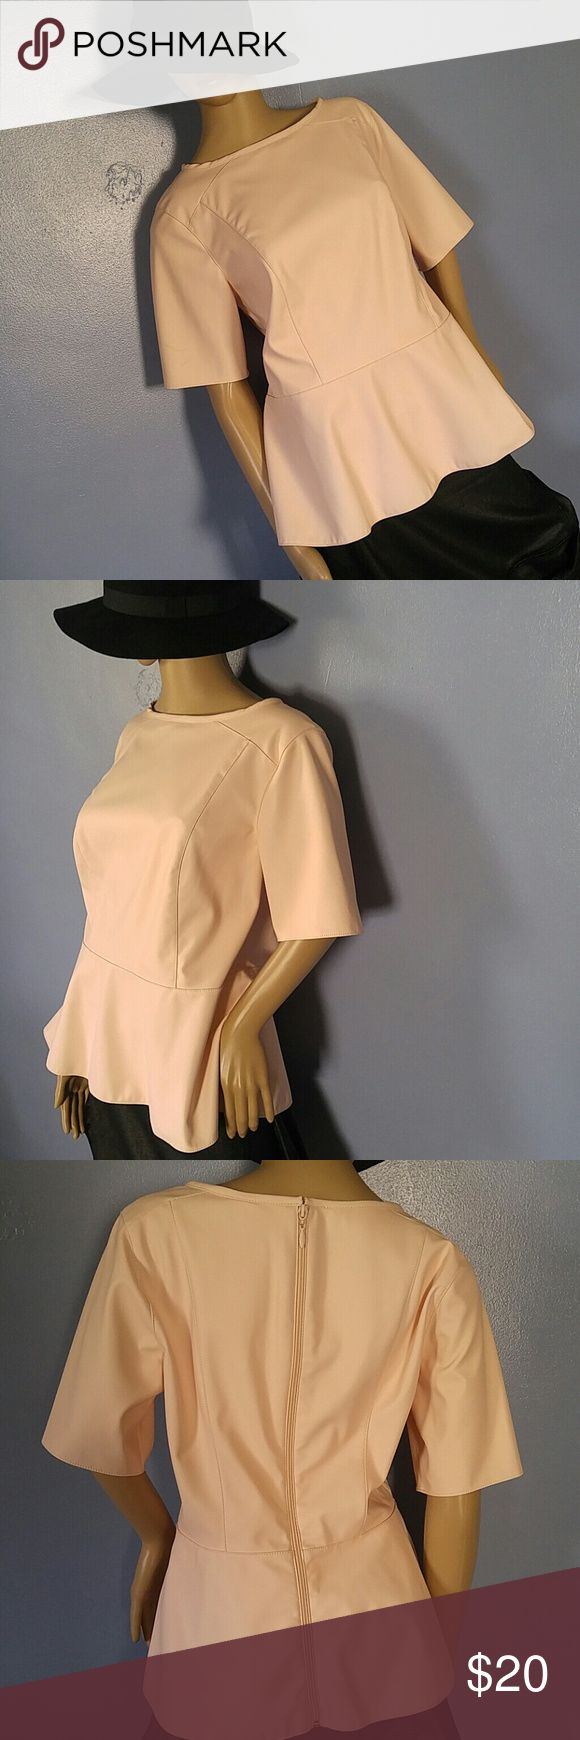 "Dennis Basso Soft Pink Vegan Leather Peplum Top Soft Pink Vegan Leather Peplum Top Very Cute ! Back Zipper Opens Fully. Very Soft inside Lining Machine Washable. Was purchased on QVC Sleeves: 11"" Bust: 40"" Total Length: 25"" Peplum Waist : 36"" Fits size 10 Dennis Basso Tops"